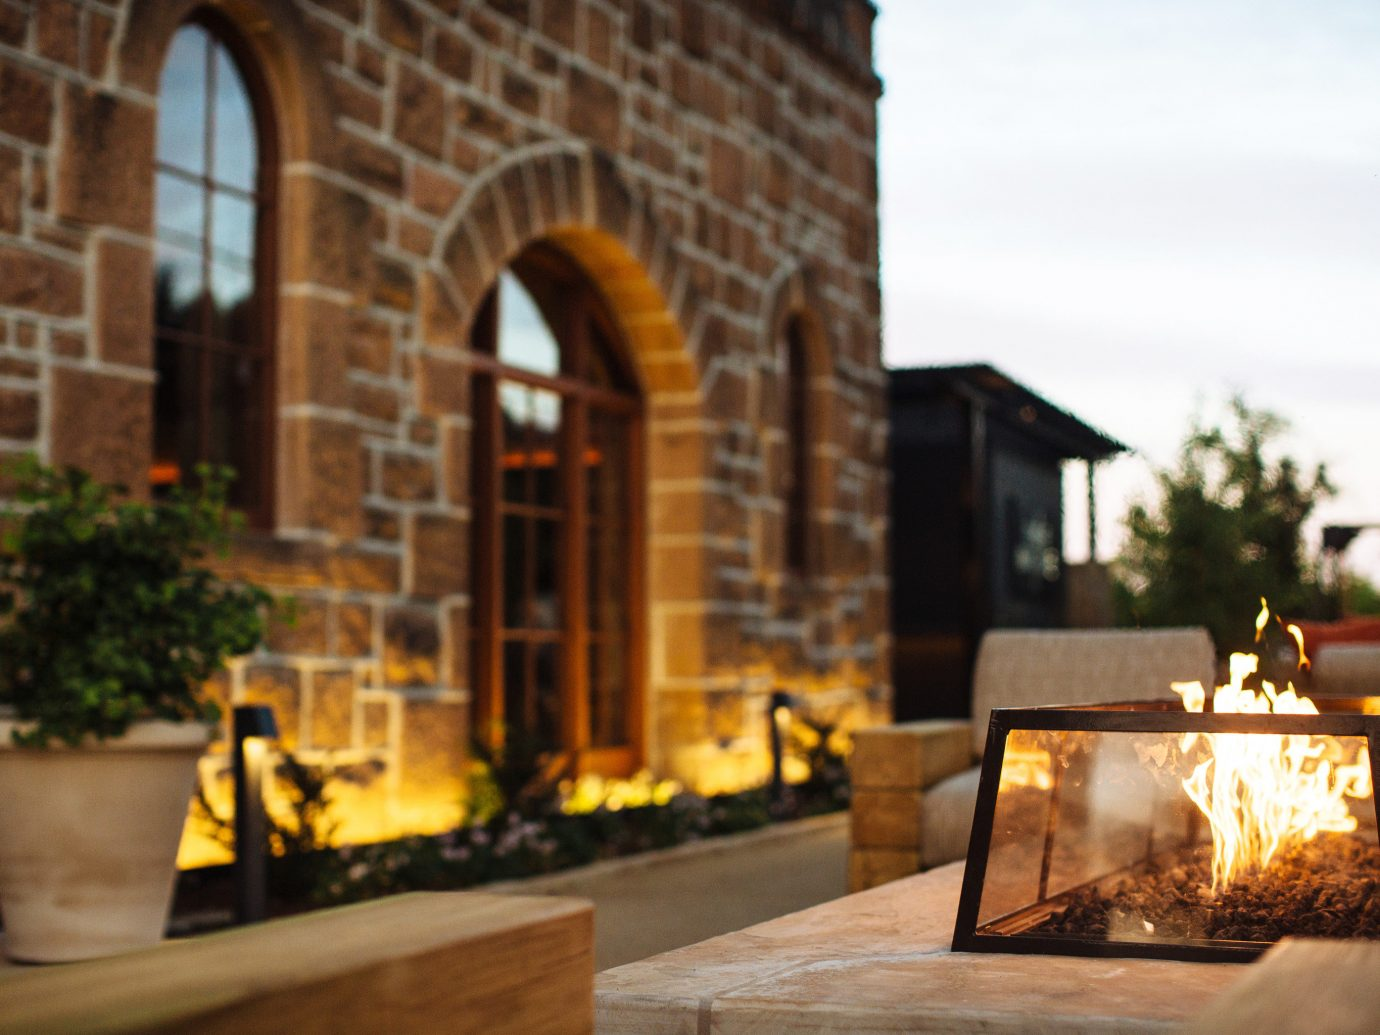 Trip Ideas building outdoor home lighting Courtyard Fireplace stone arch